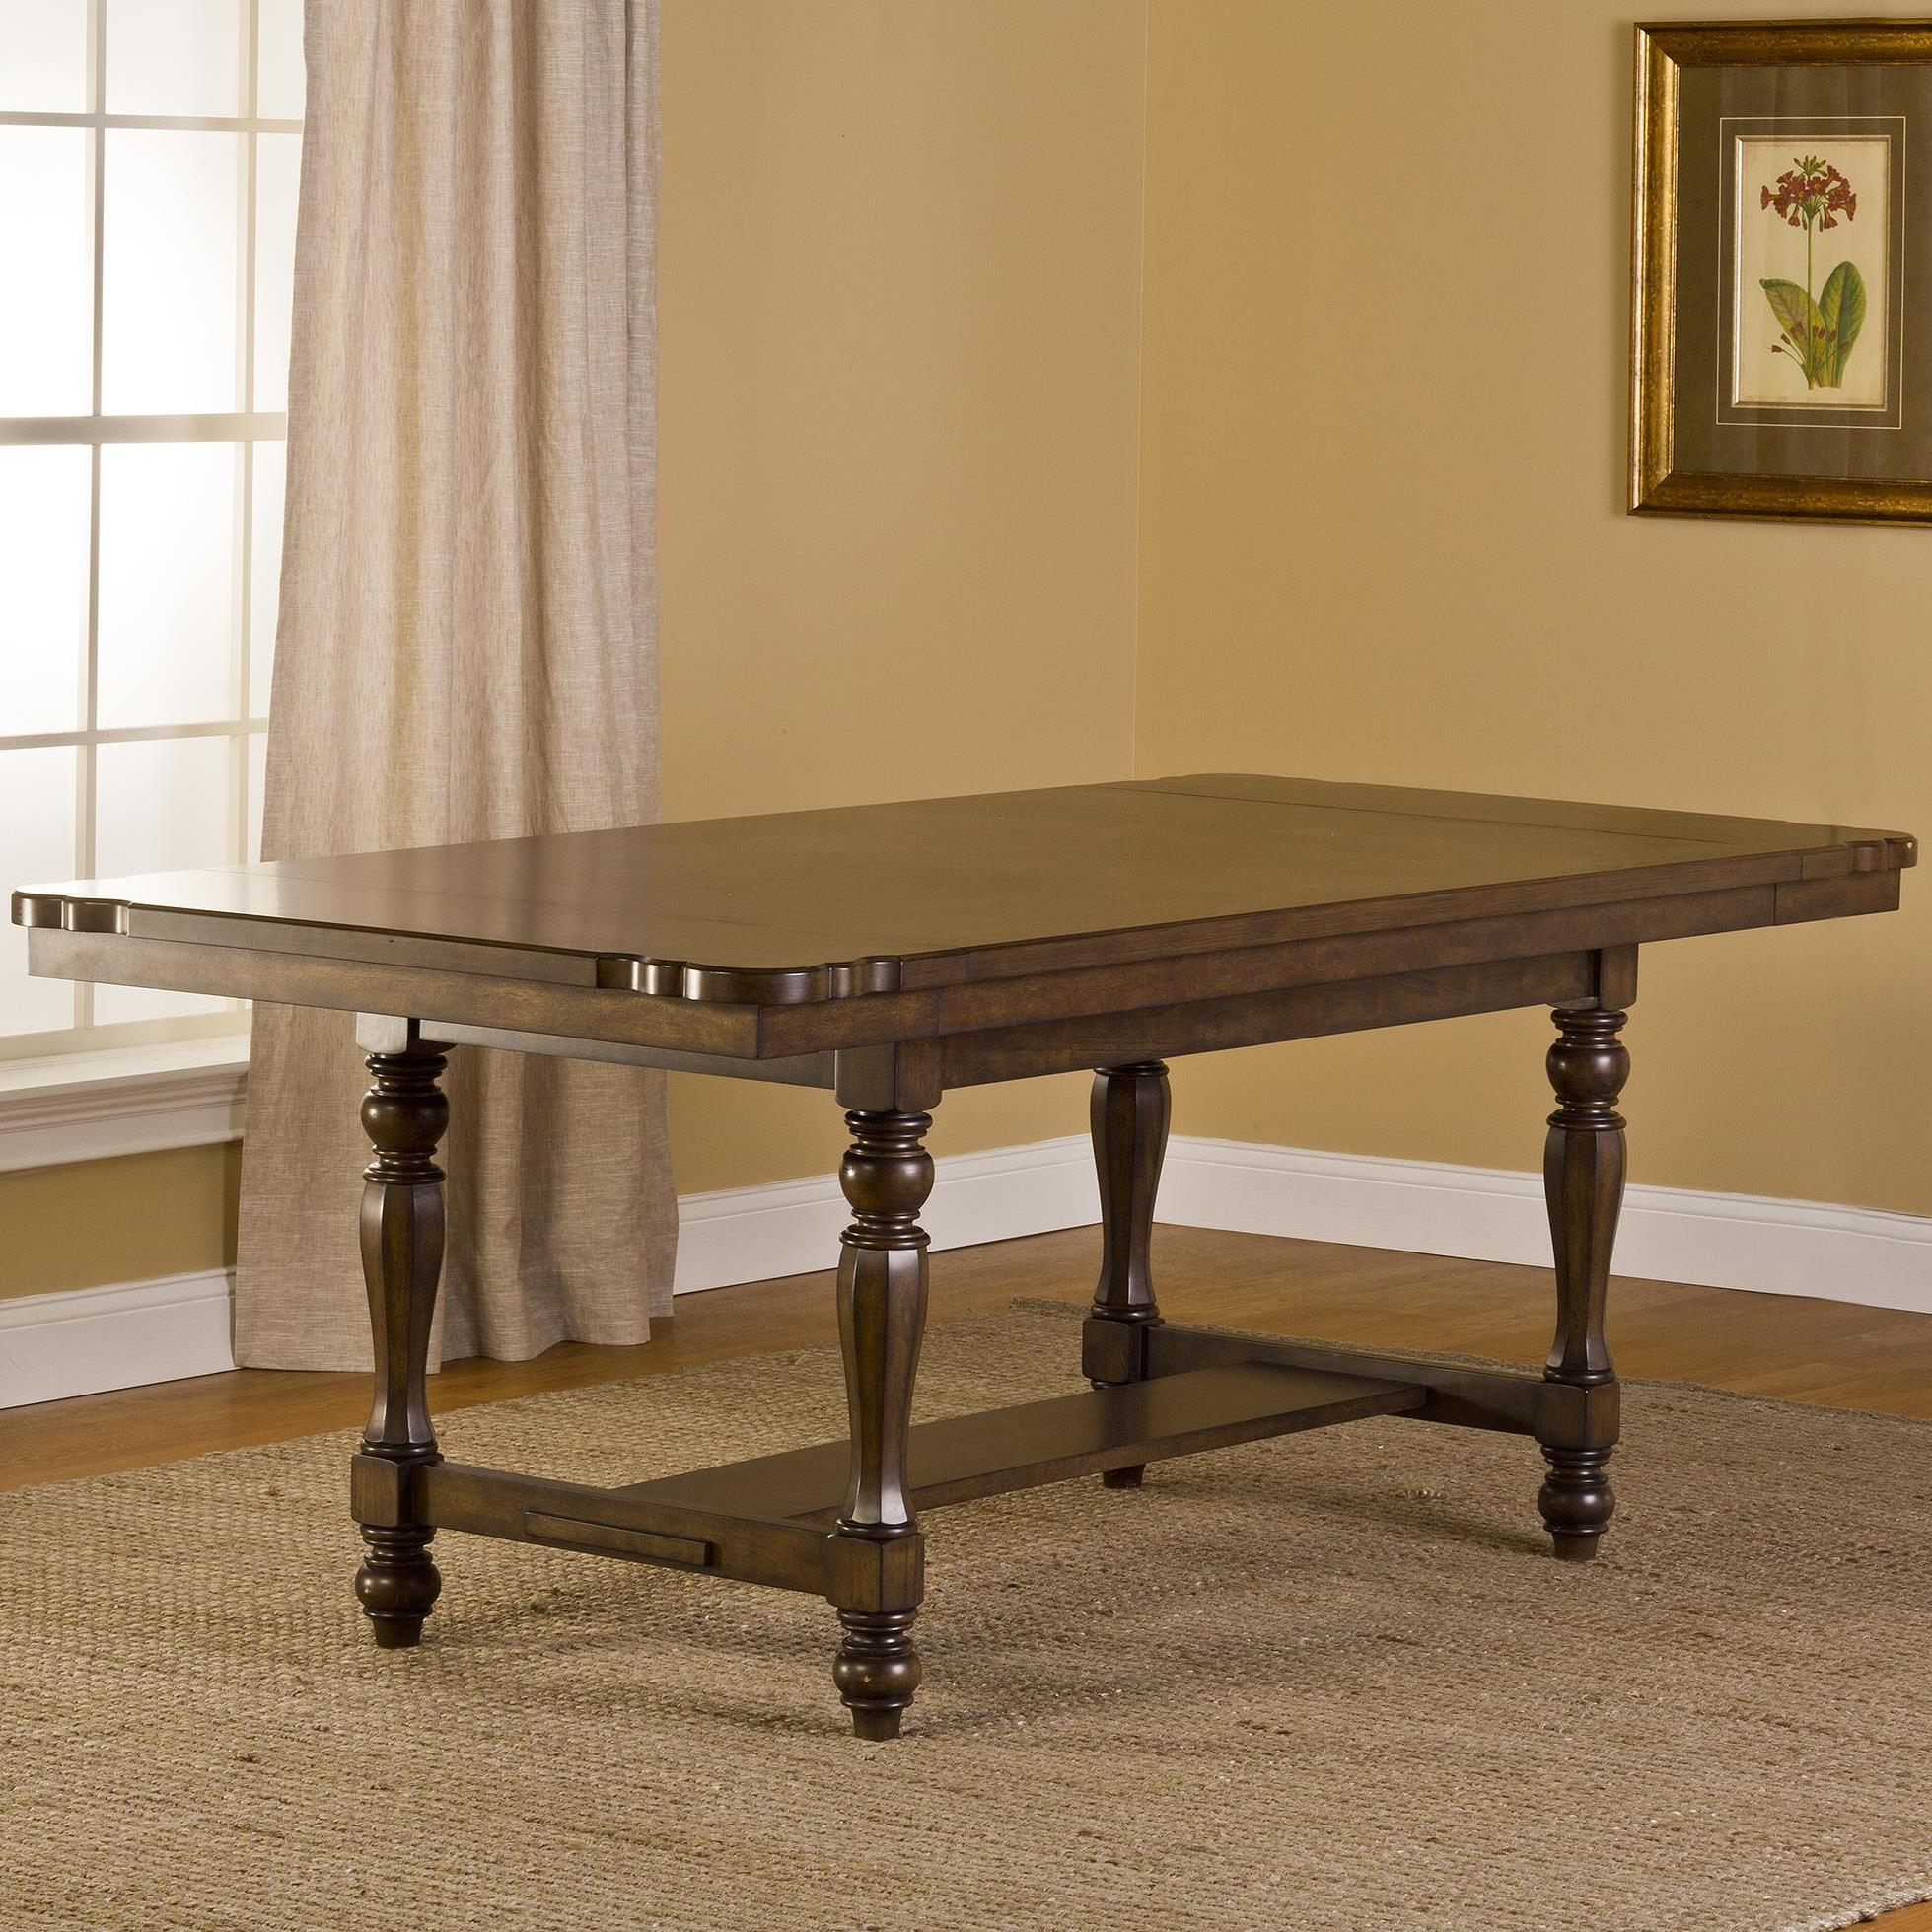 Hillsdale Seaton Springs Dining Table - Item Number: 5484-814